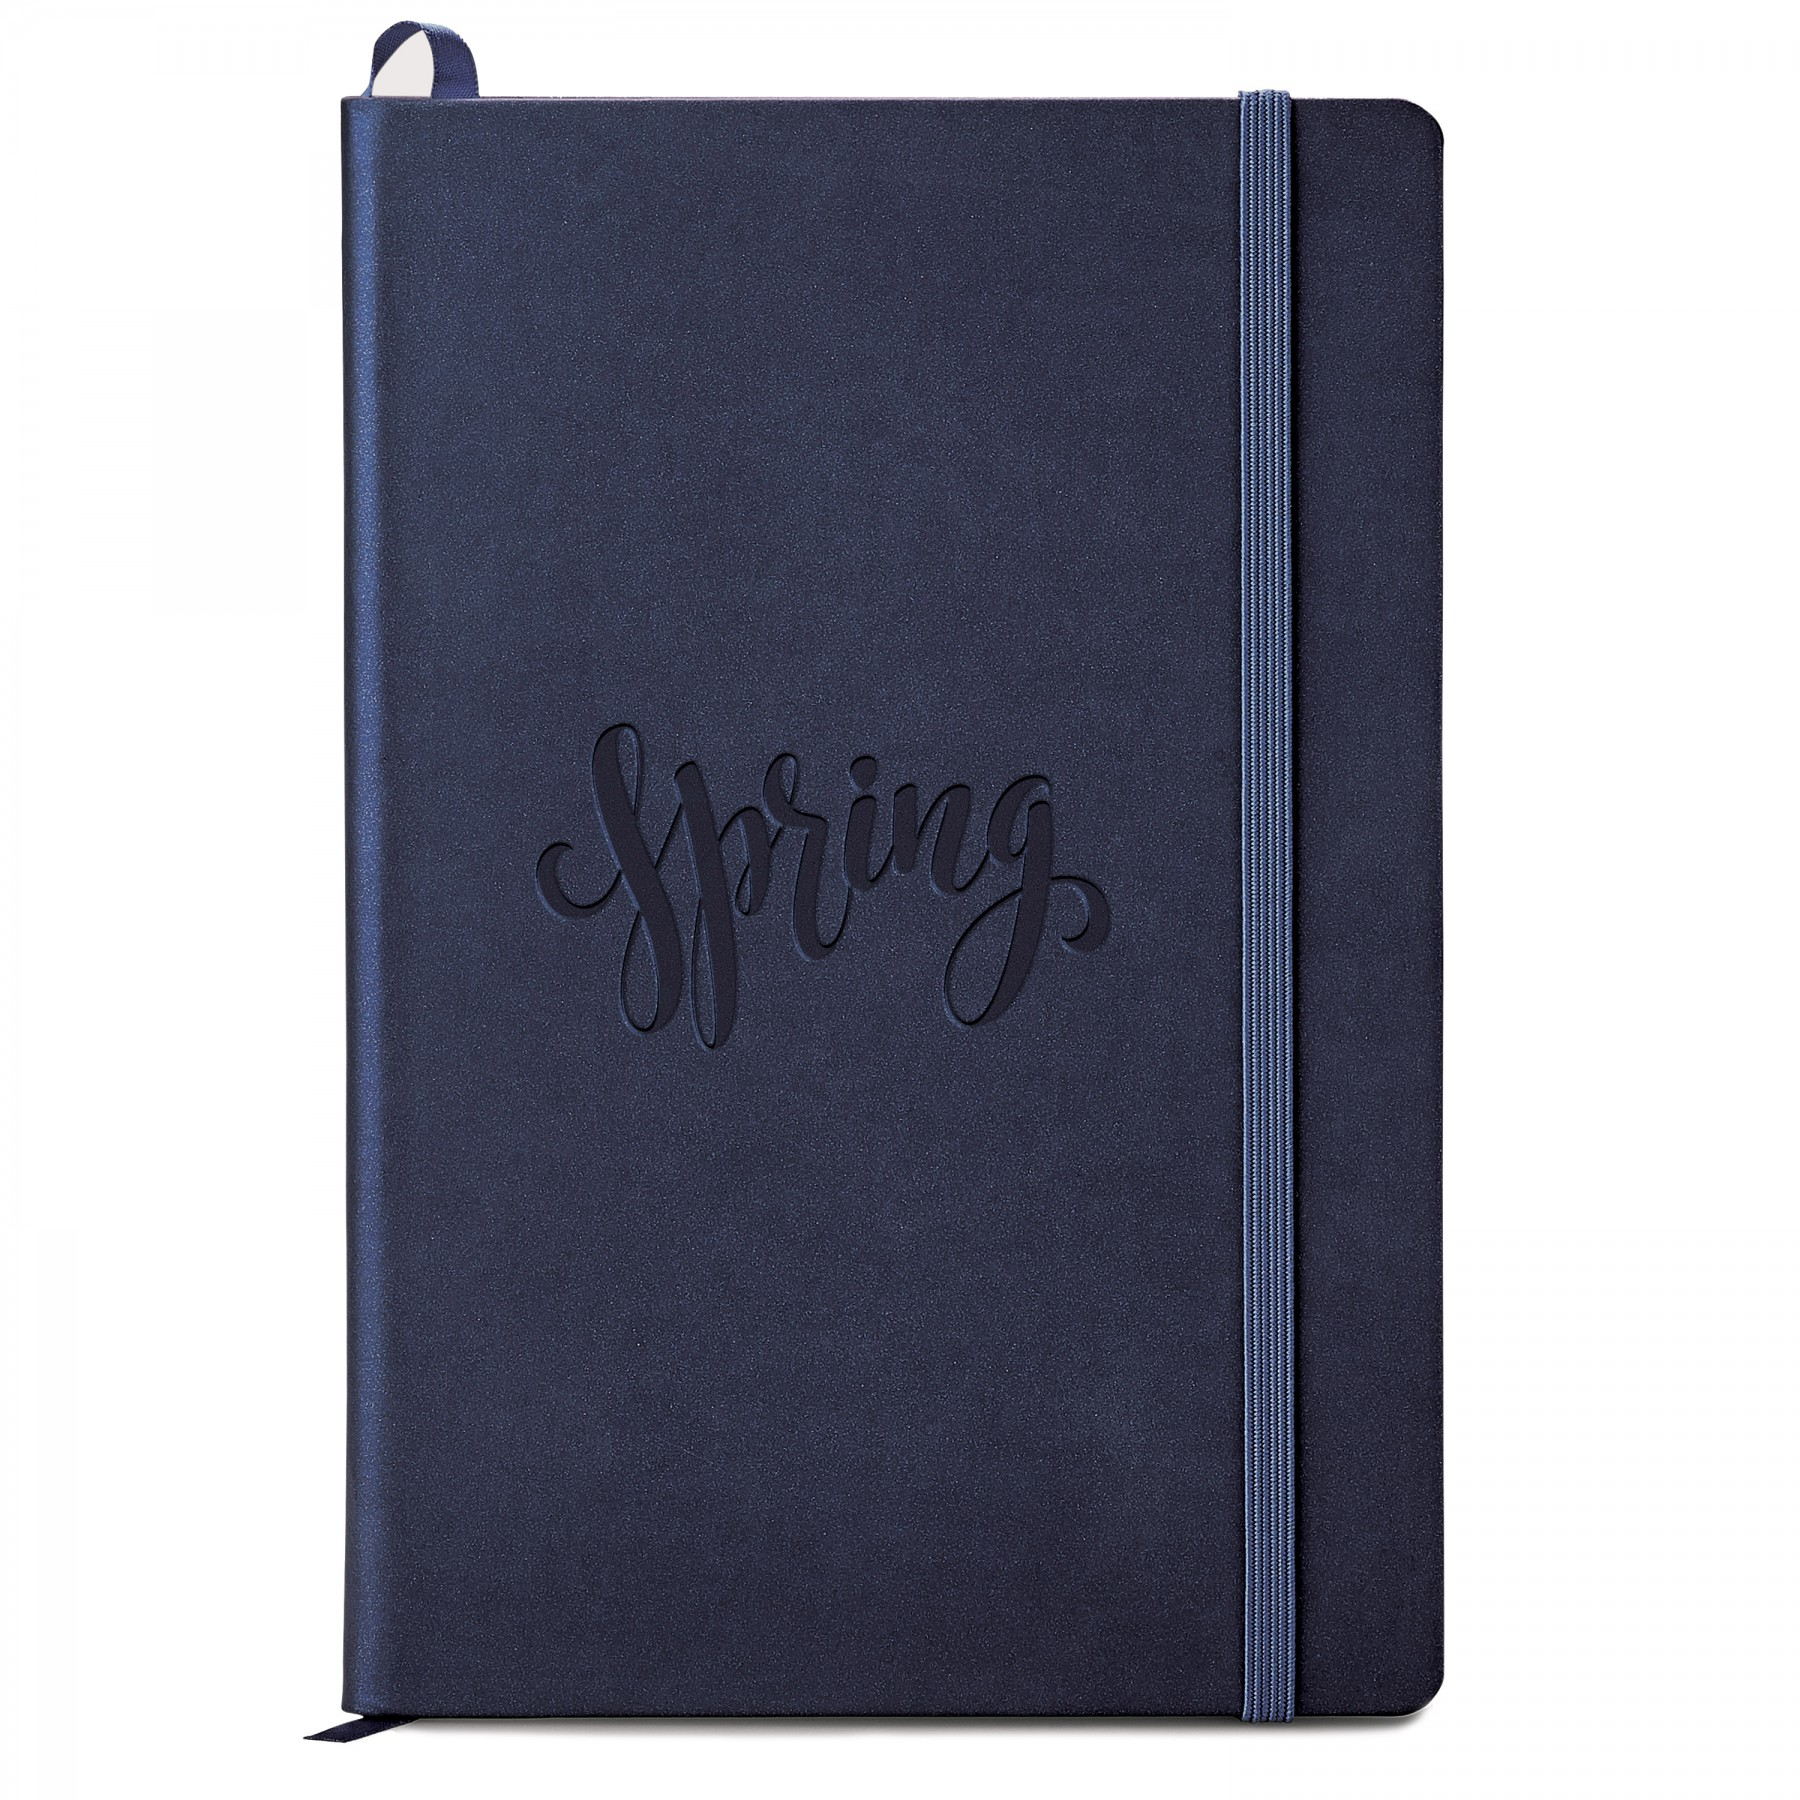 Neoskin Hard Cover Journal, ST4157, Debossed Logo